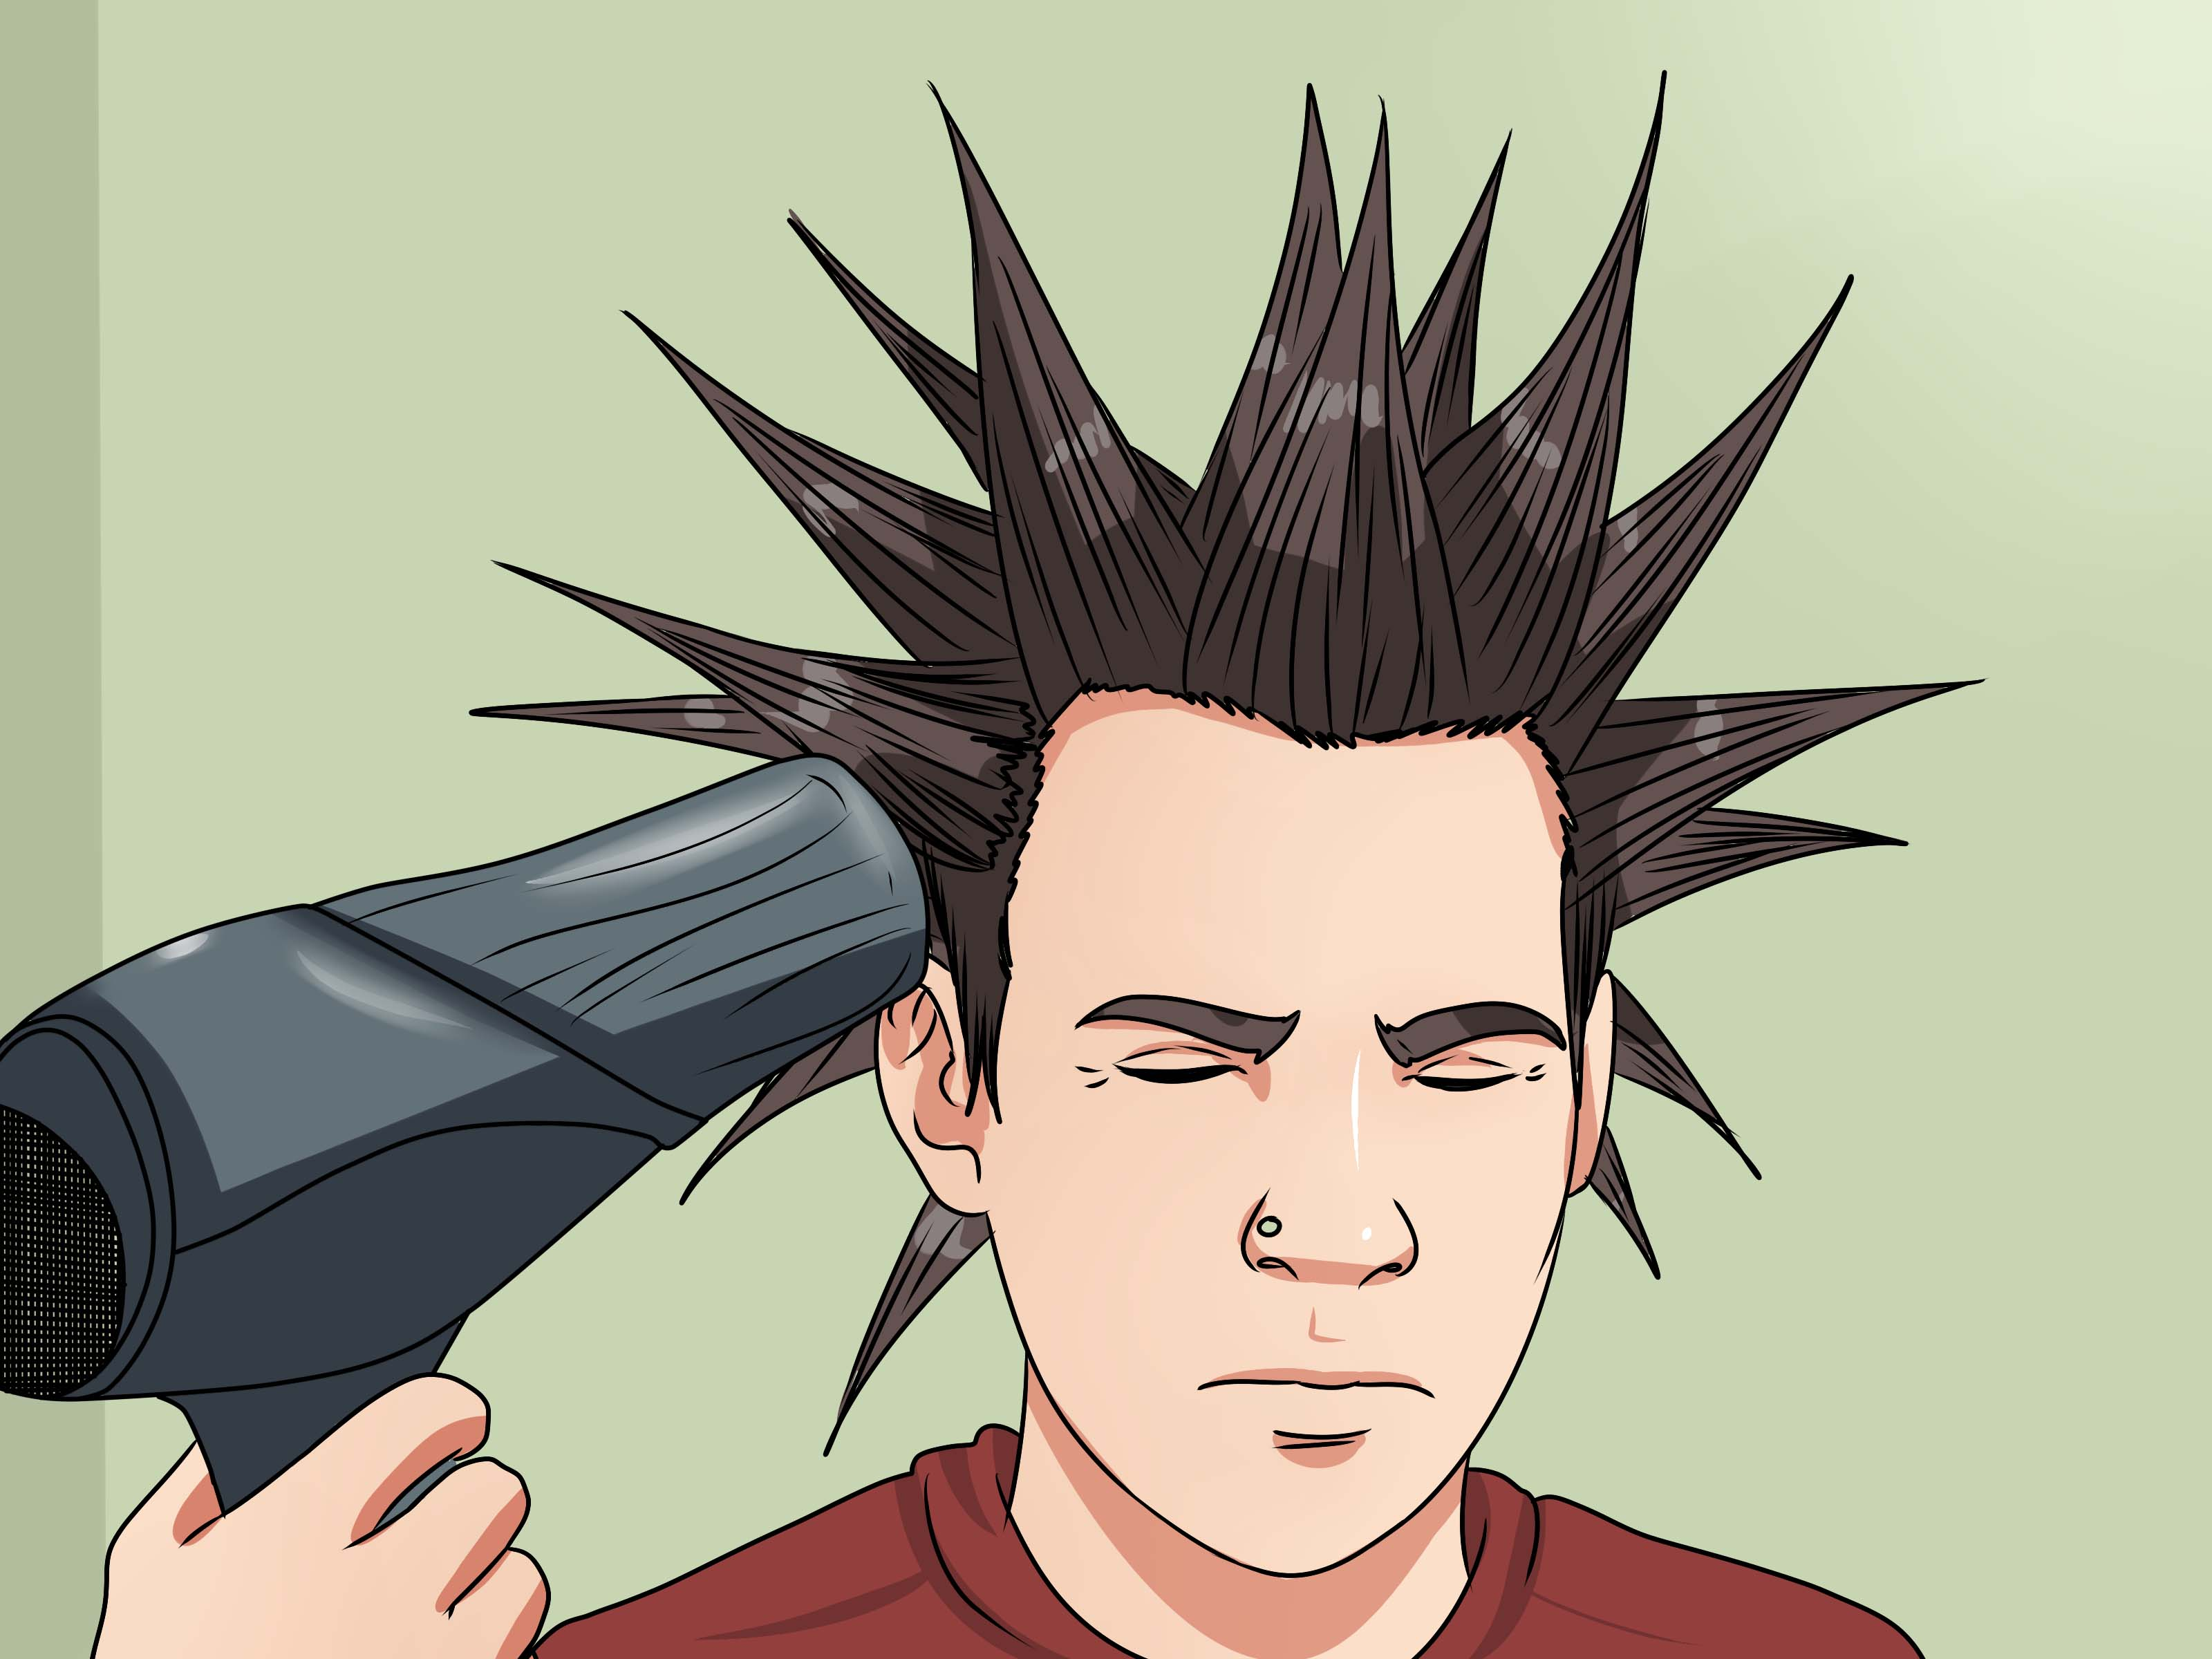 How To Liberty Spike Your Hair 12 Steps With Pictures